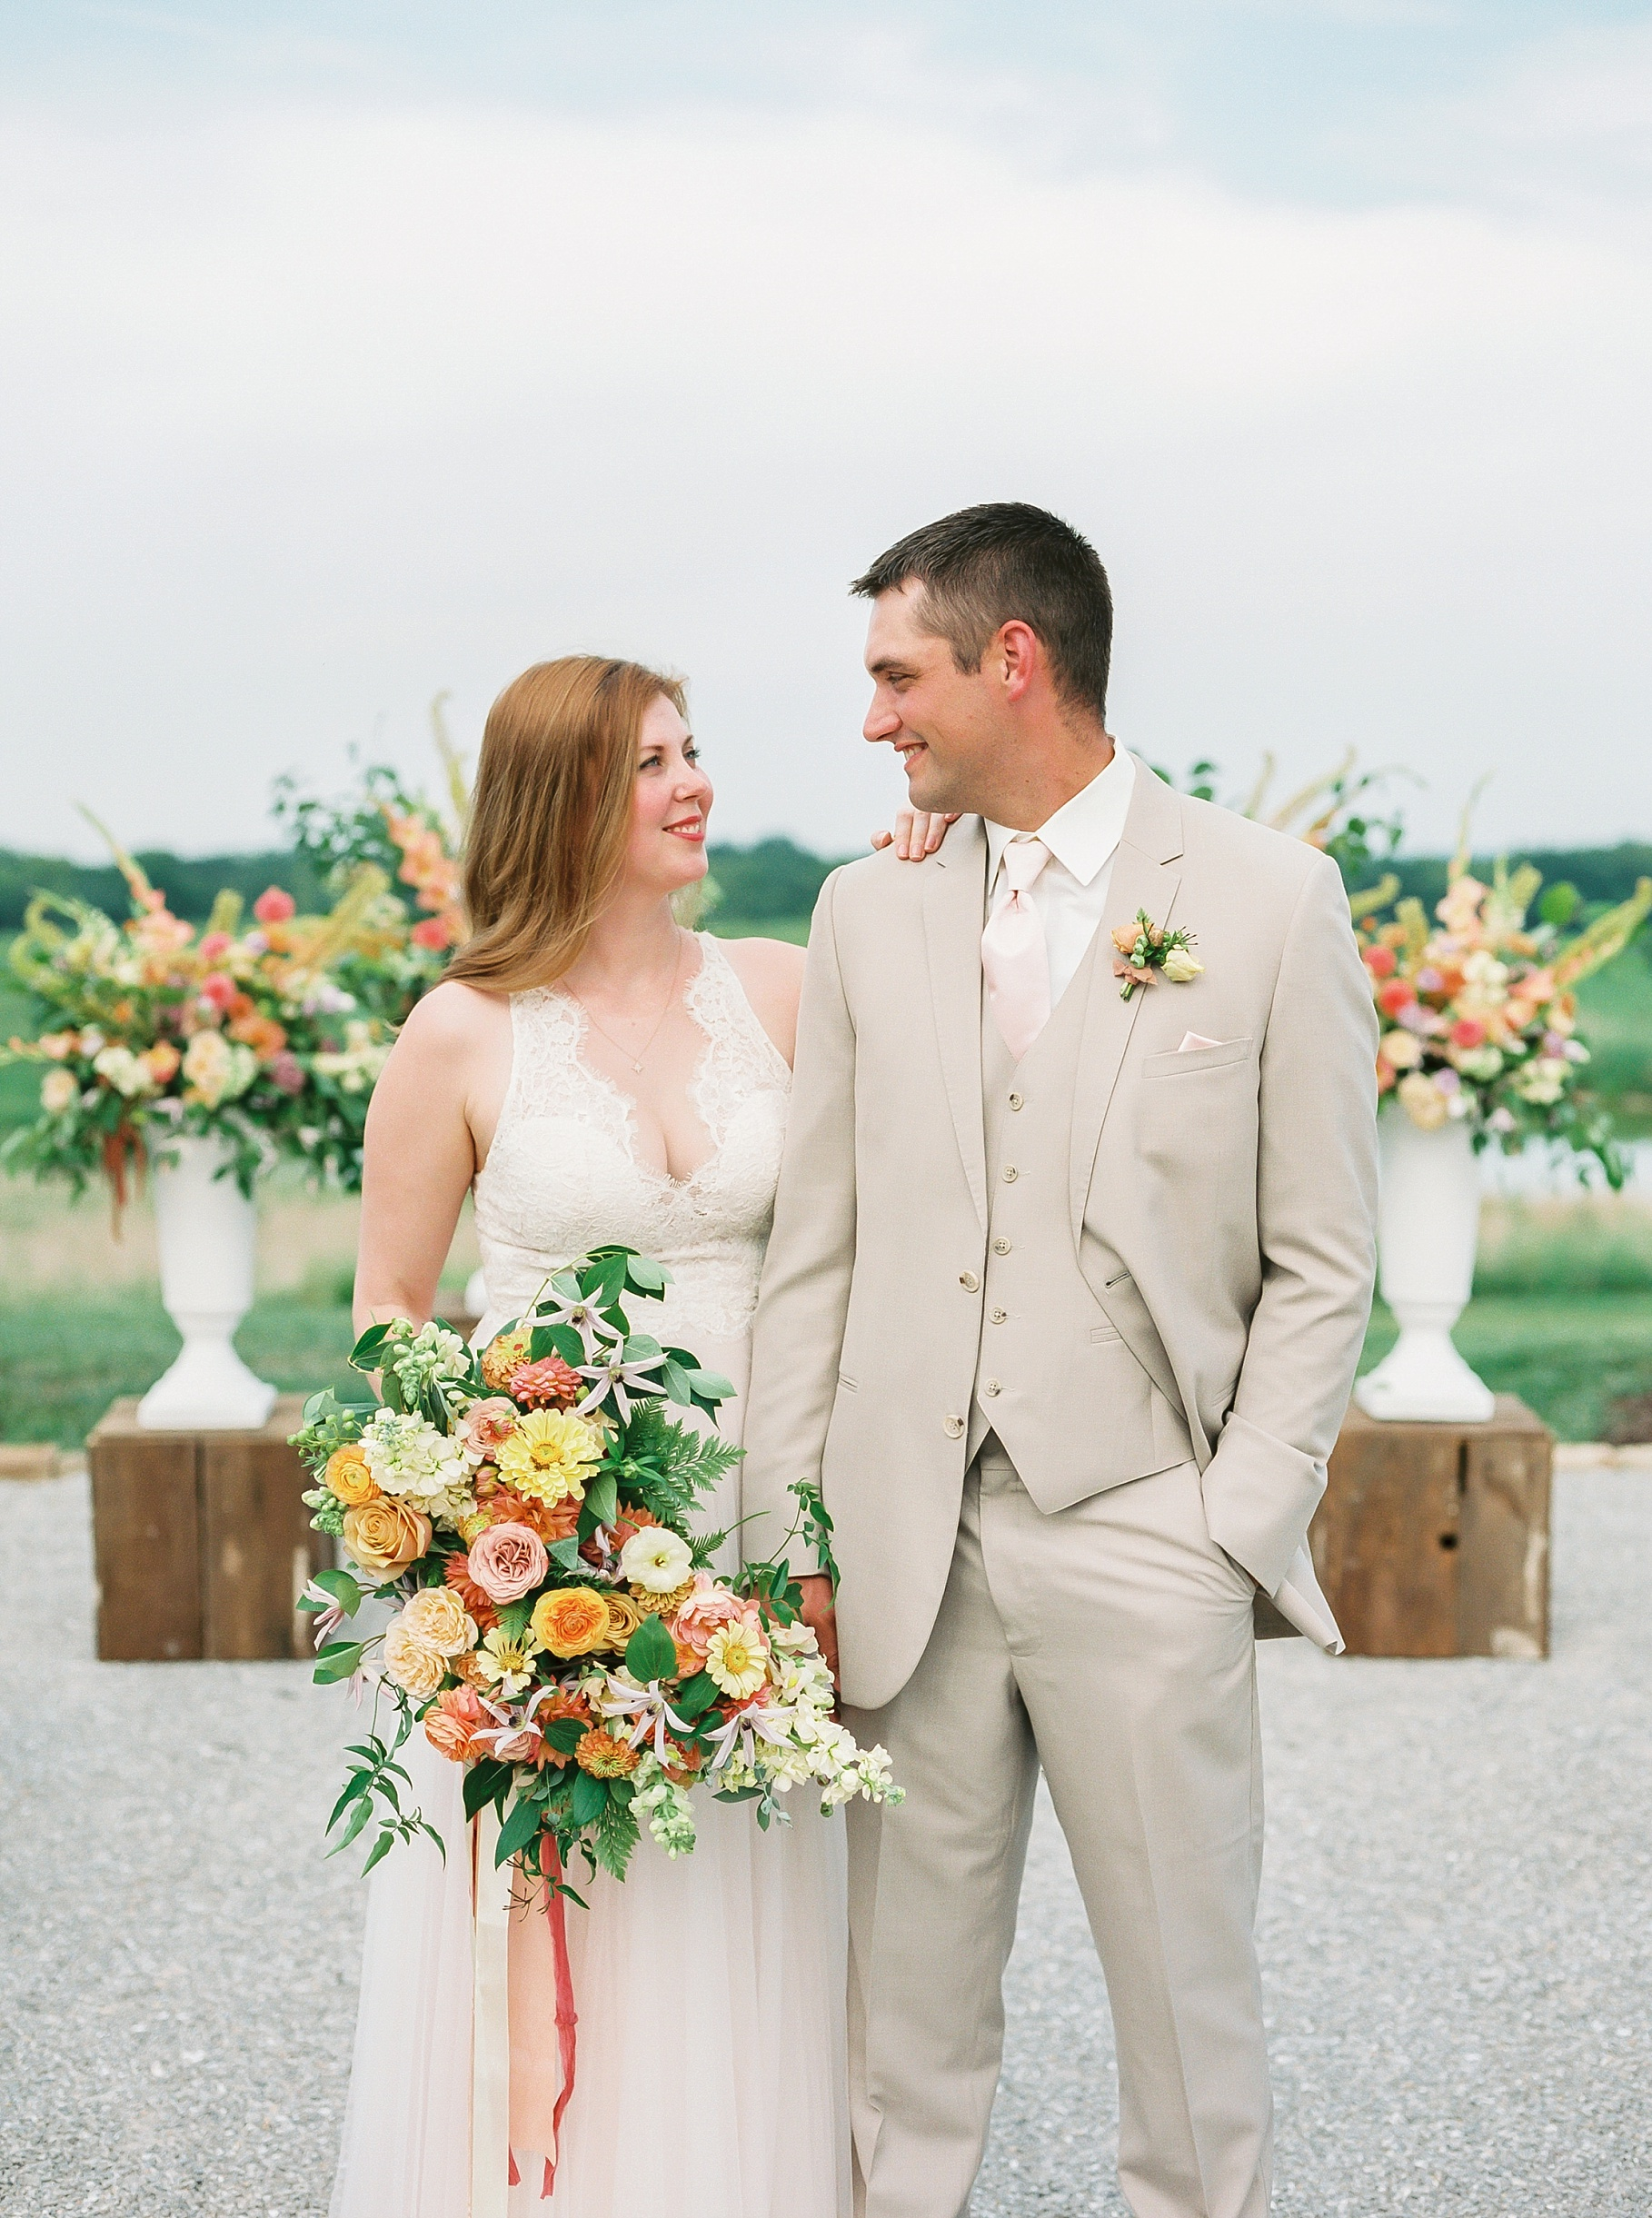 Late Summer Wedding With Pastel Toned Soiree at Blue Bell Farm by Kelsi Kliethermes Photography Best Columbia Missouri Wedding Photographer_0092.jpg